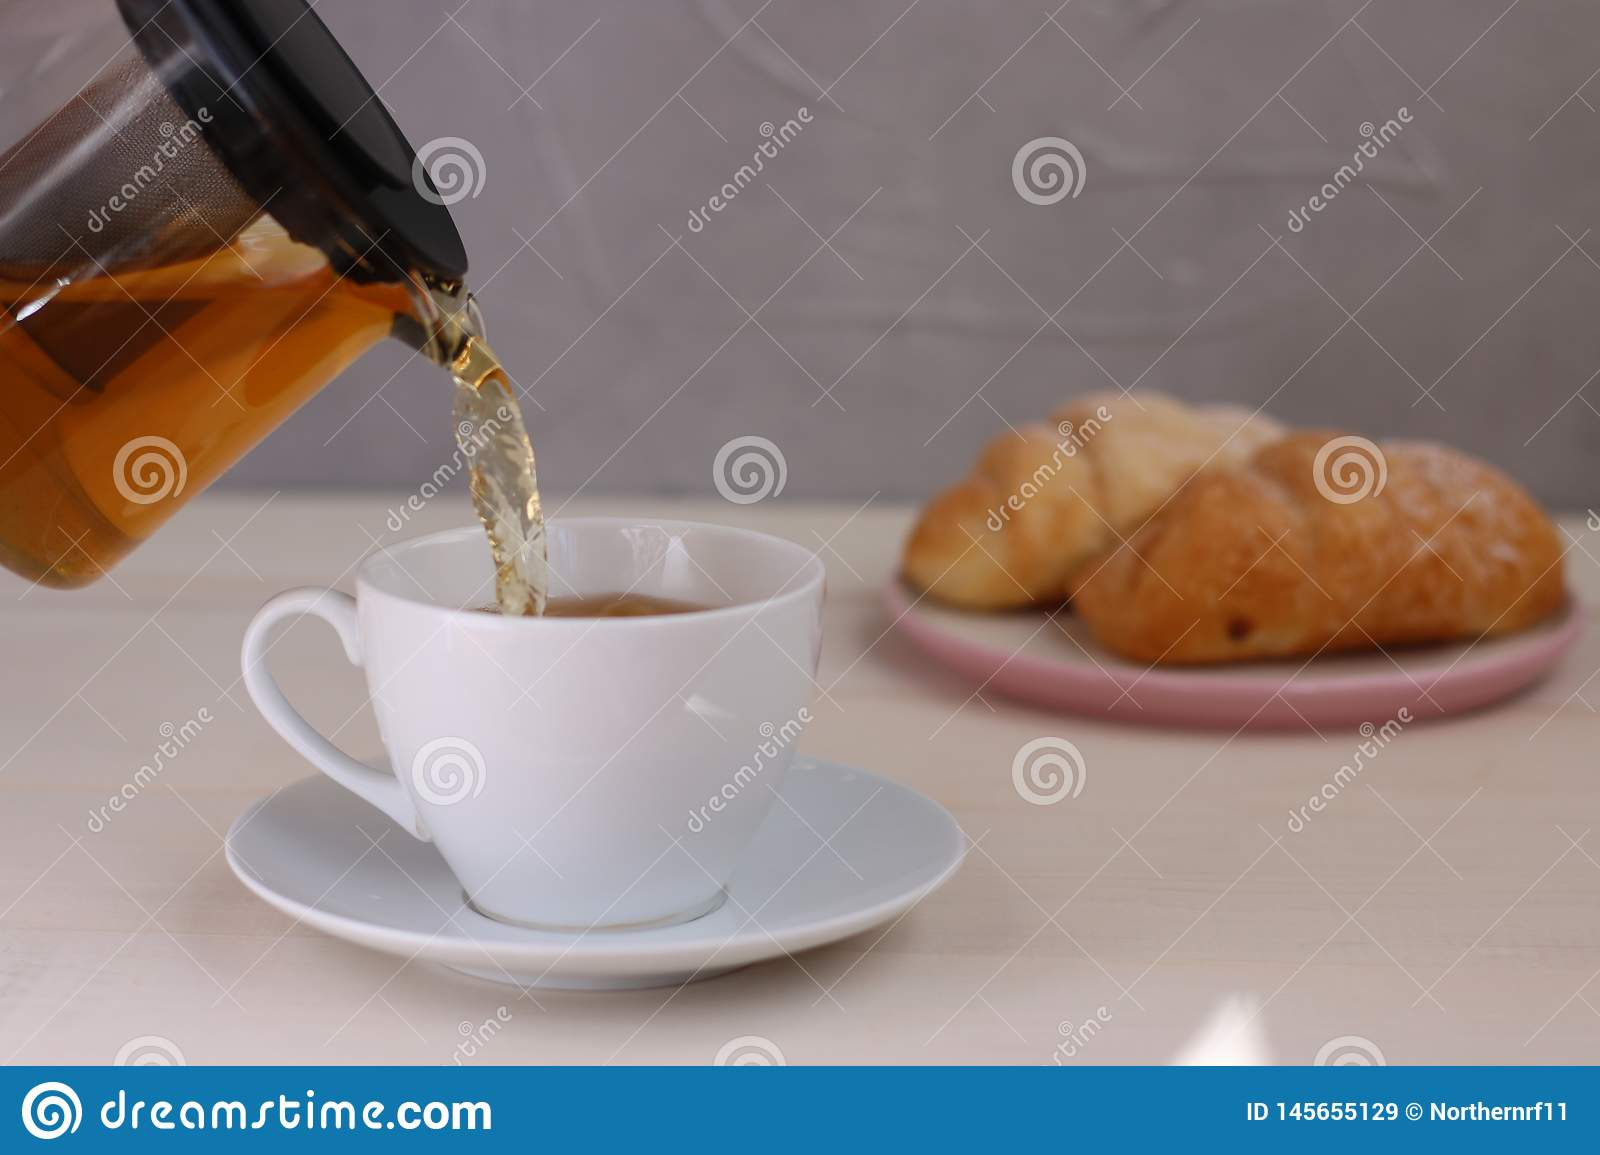 Tea pouring in cup on light background. teapot and breakfast concept